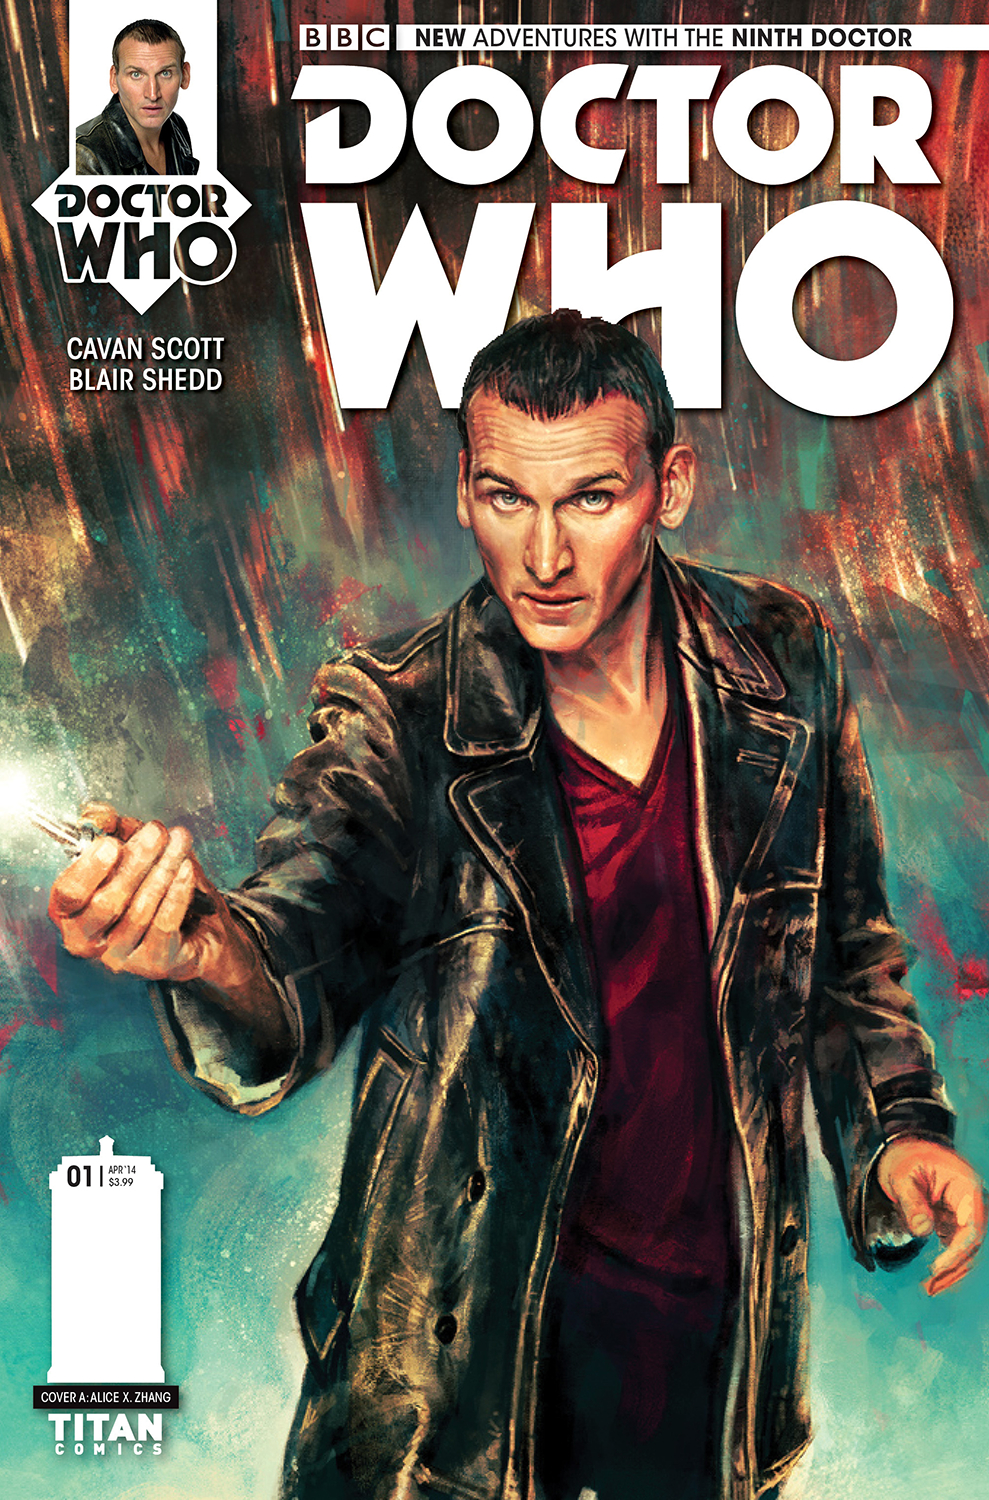 DOCTOR WHO 9TH #1 (OF 5) REG ZHANG